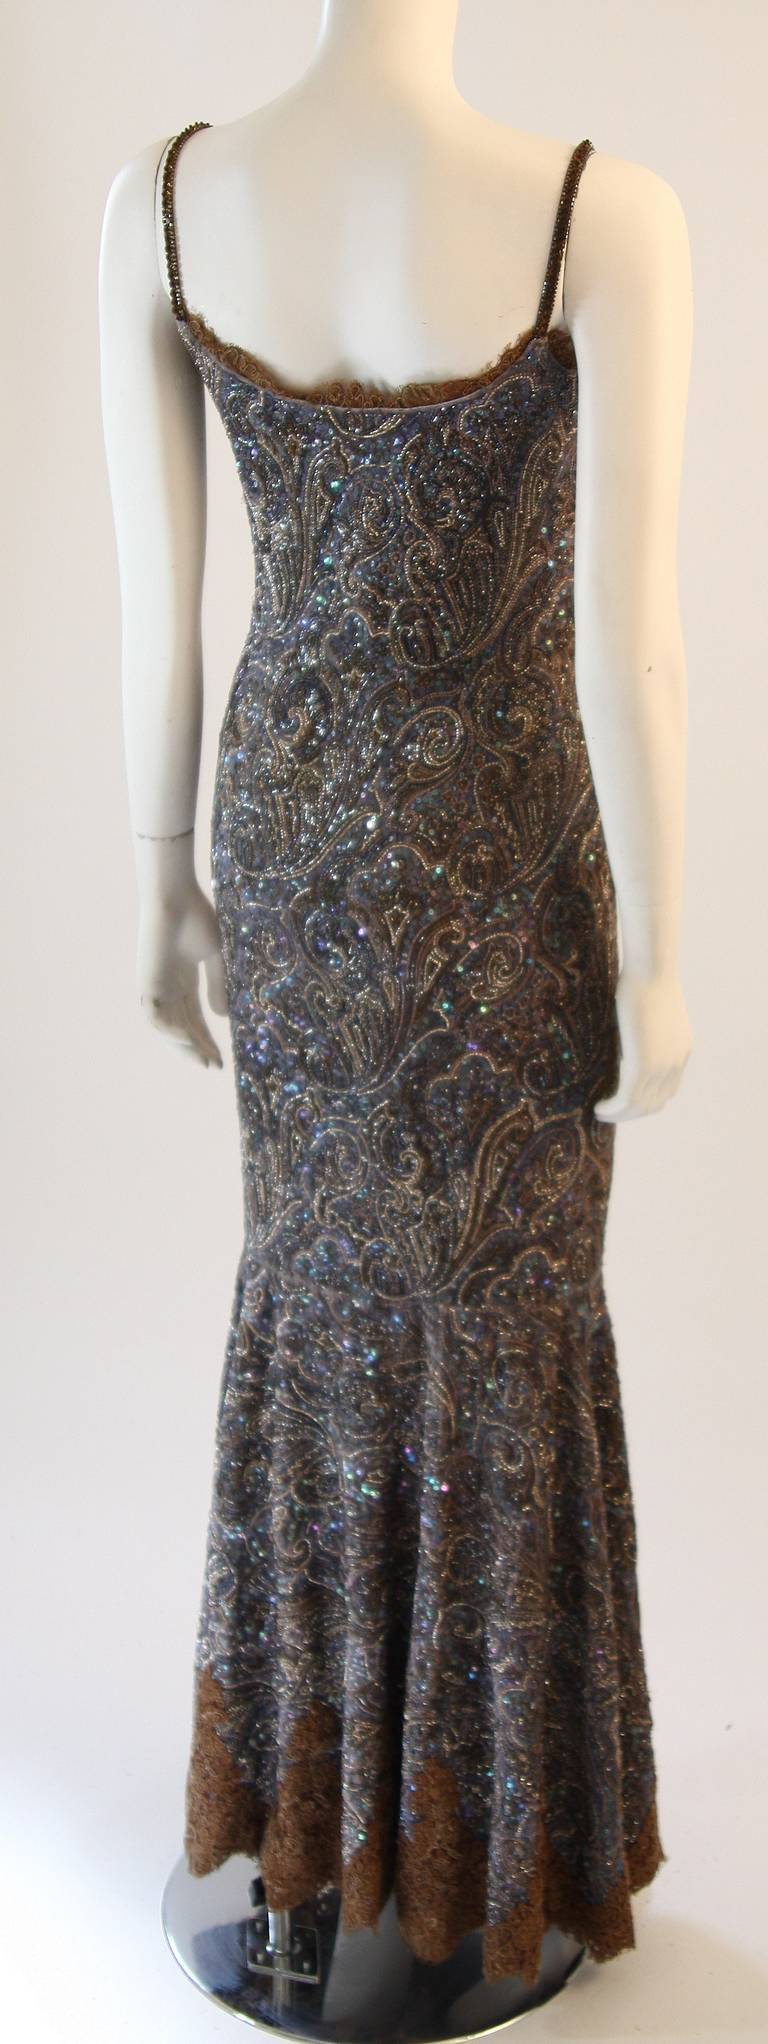 RANDI RAHM COUTURE Purple Sequin Hand Beaded Velvet Paisley Gown Size 4-6 For Sale 3